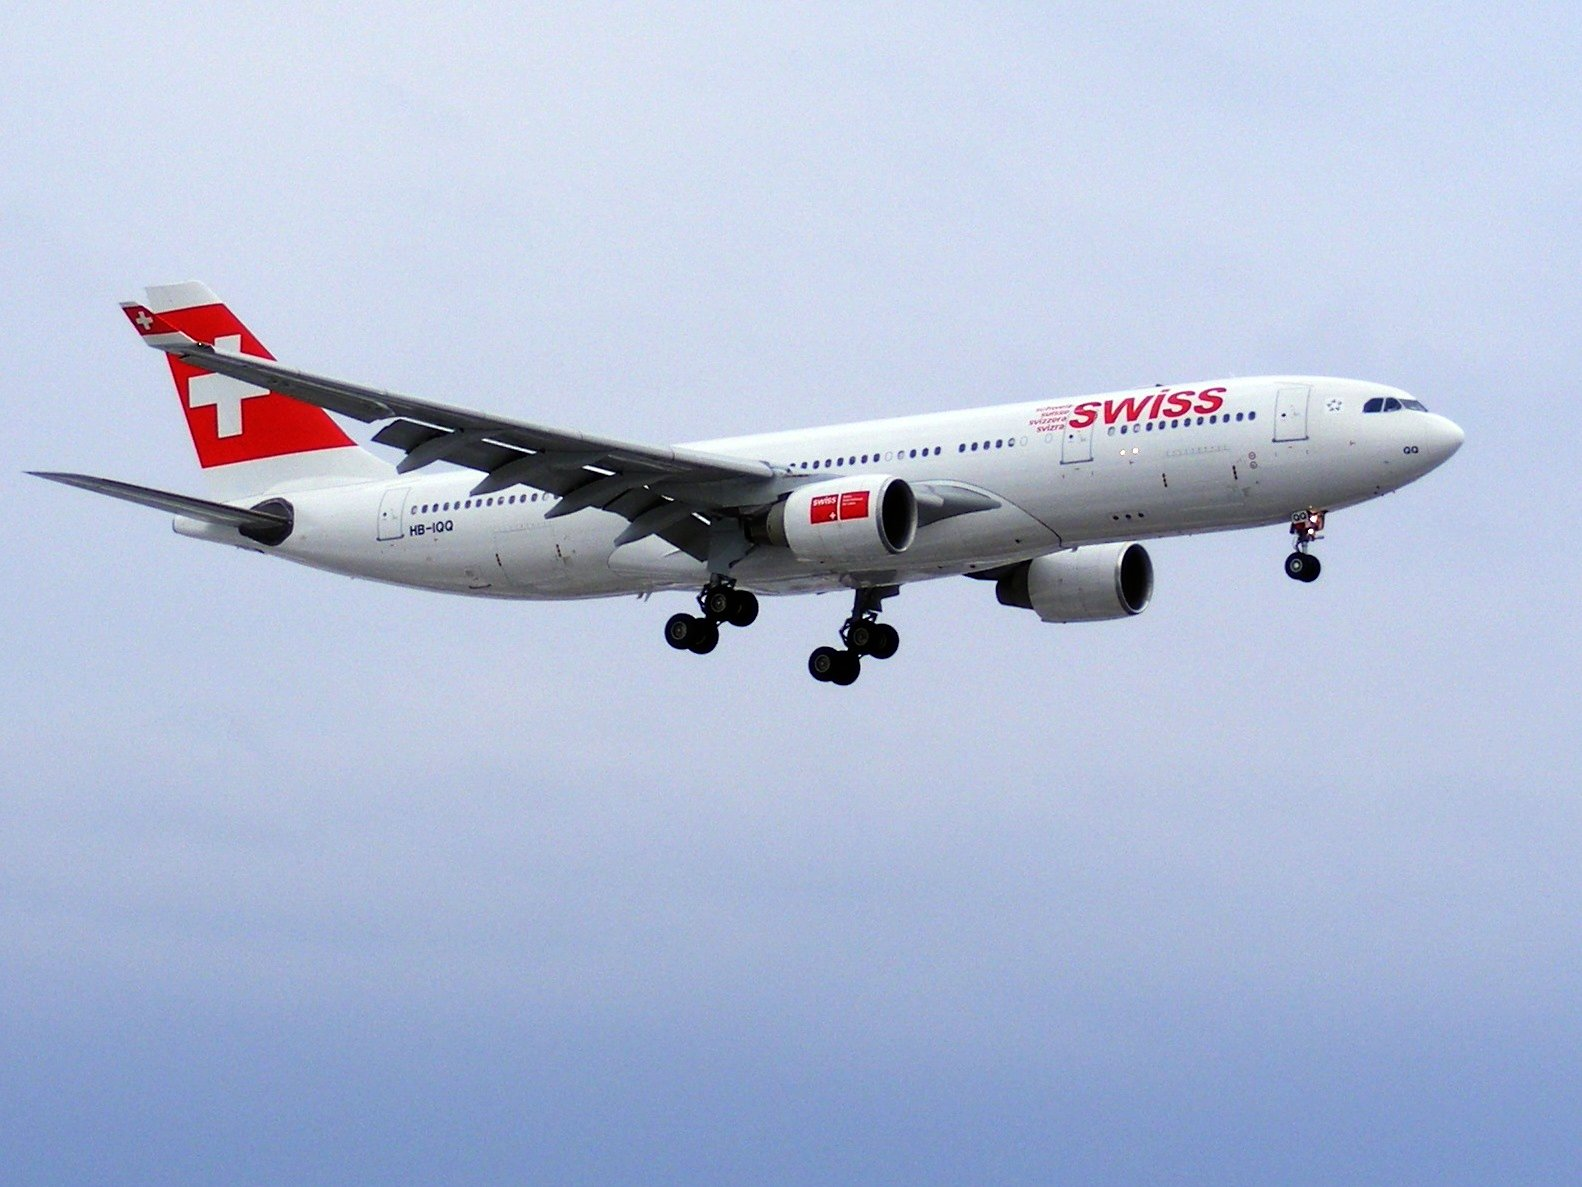 http://upload.wikimedia.org/wikipedia/commons/3/37/Swiss_Airbus_A330-223_(HB-IQQ).jpg